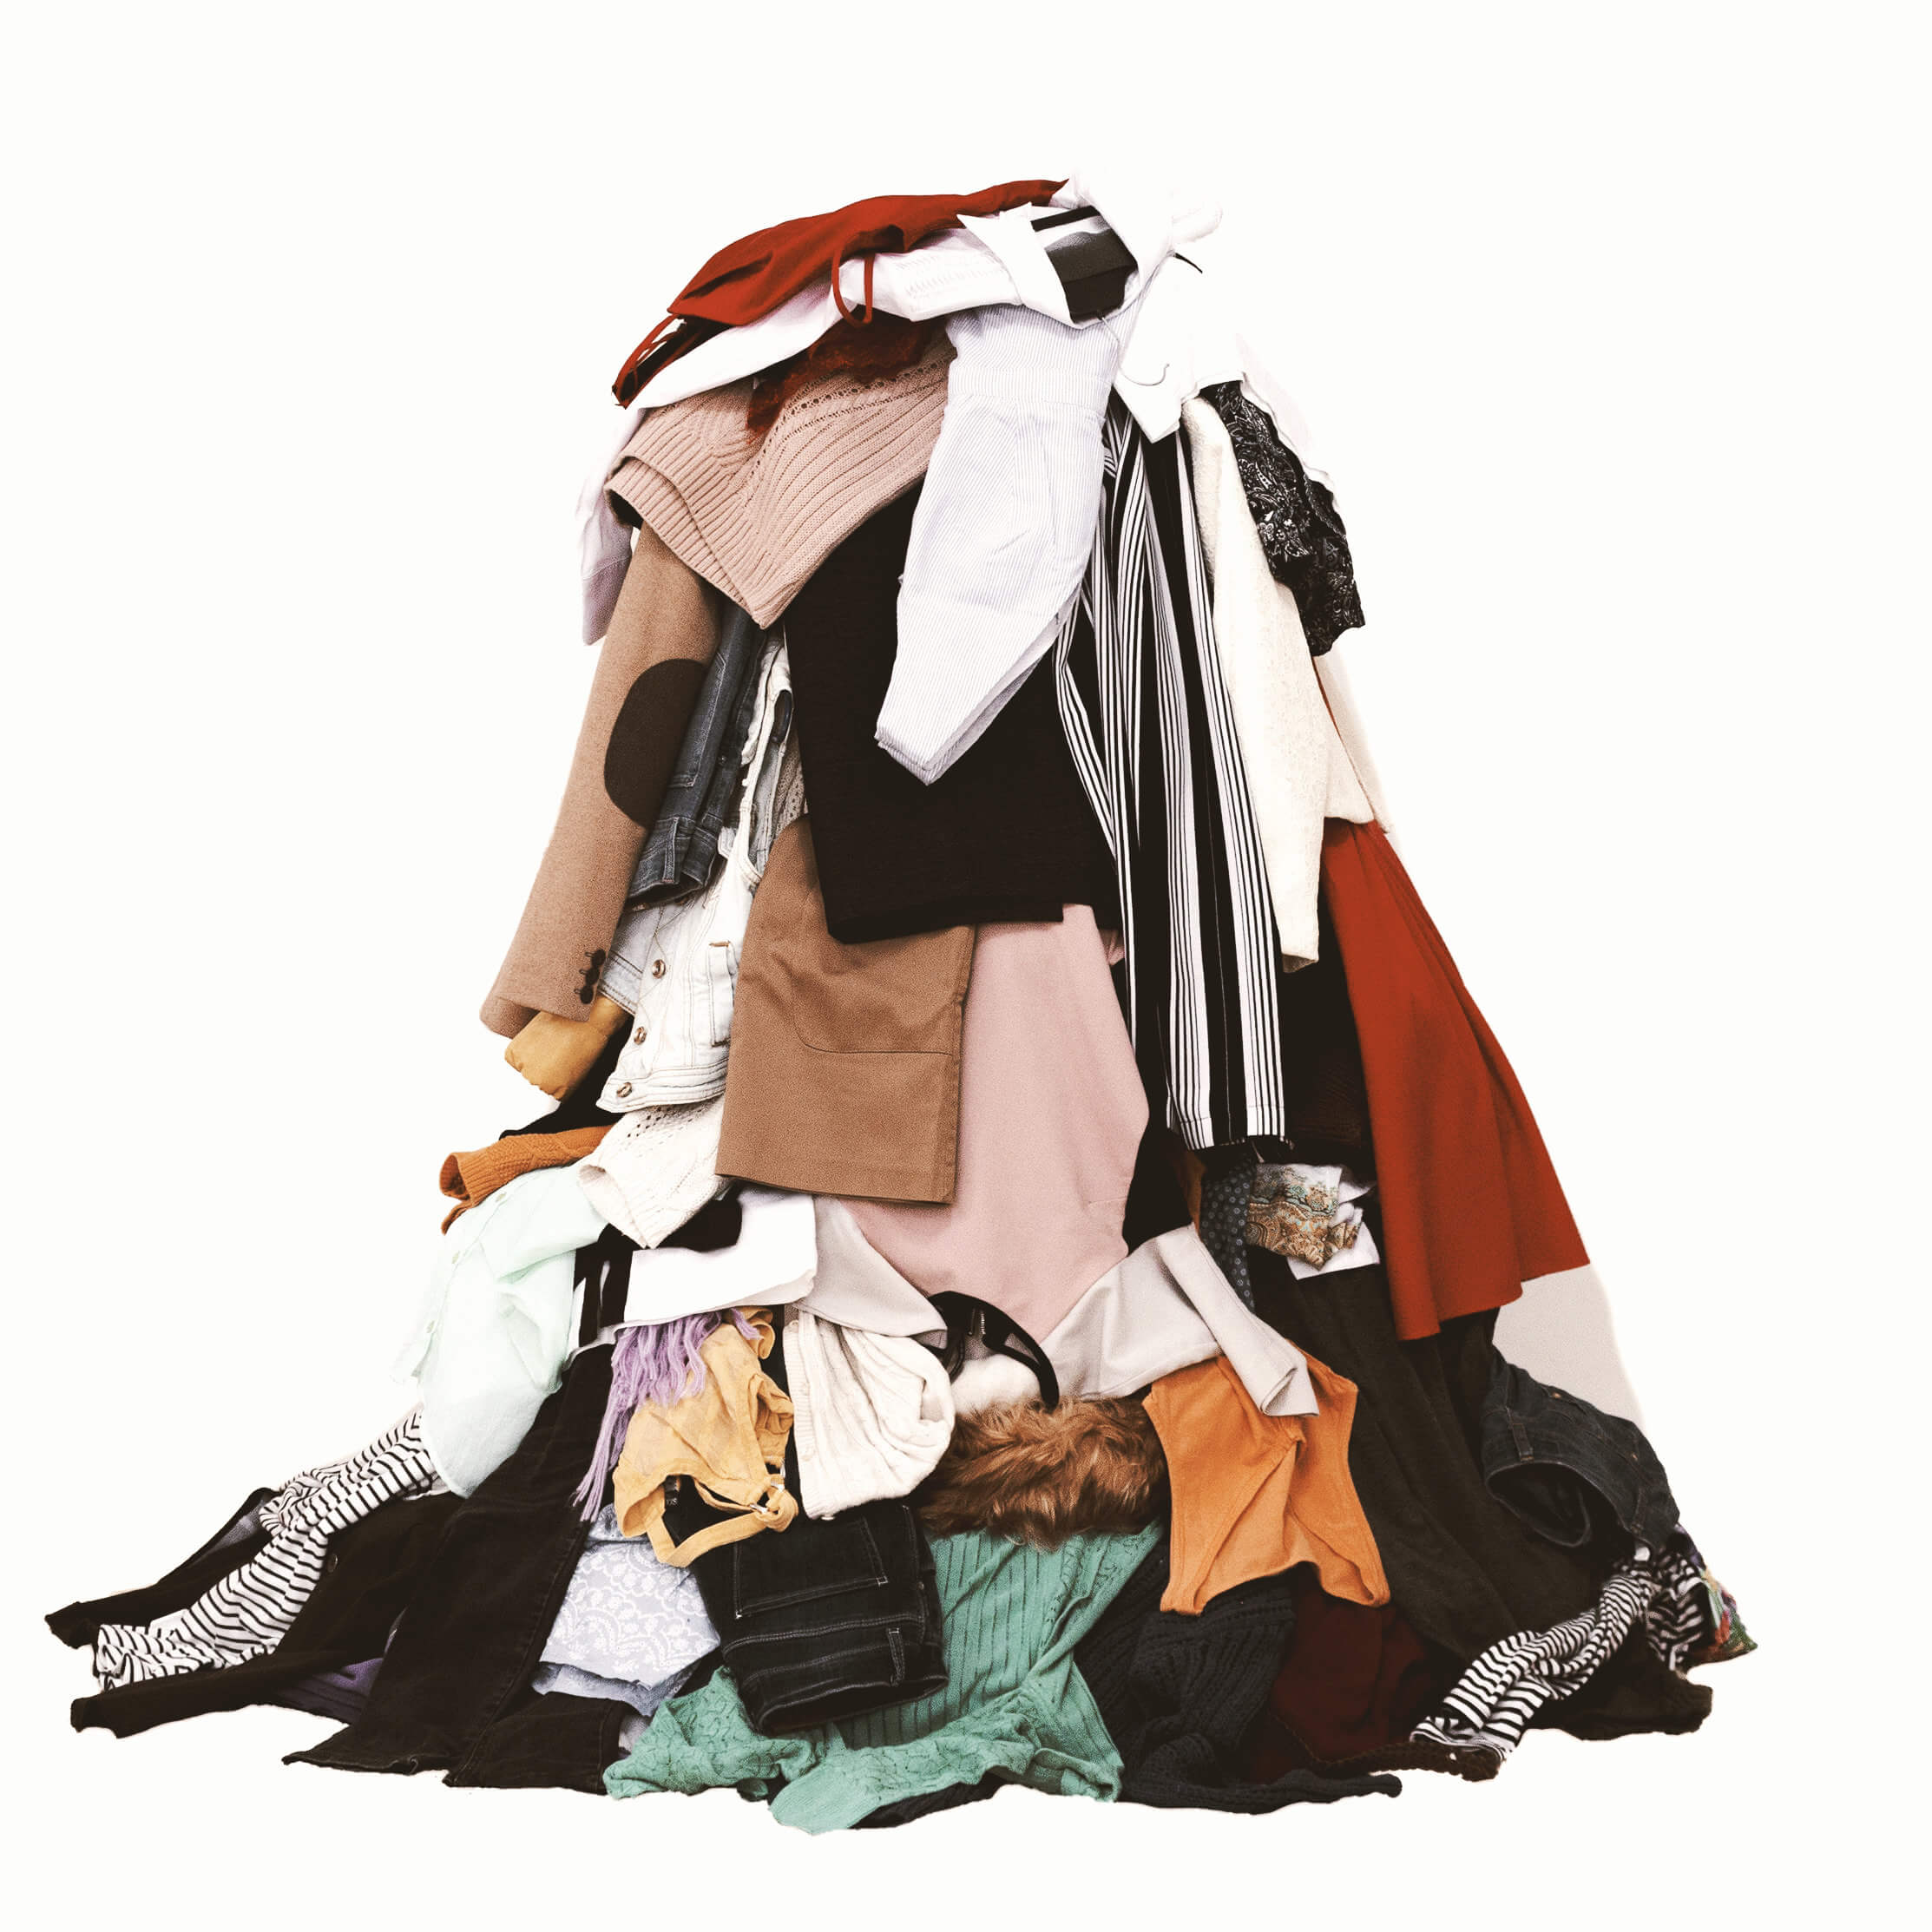 KonMari Tidying. A Large Pile Of Colourful Clothes To Demonstrate How You Begin Each KonMari Category